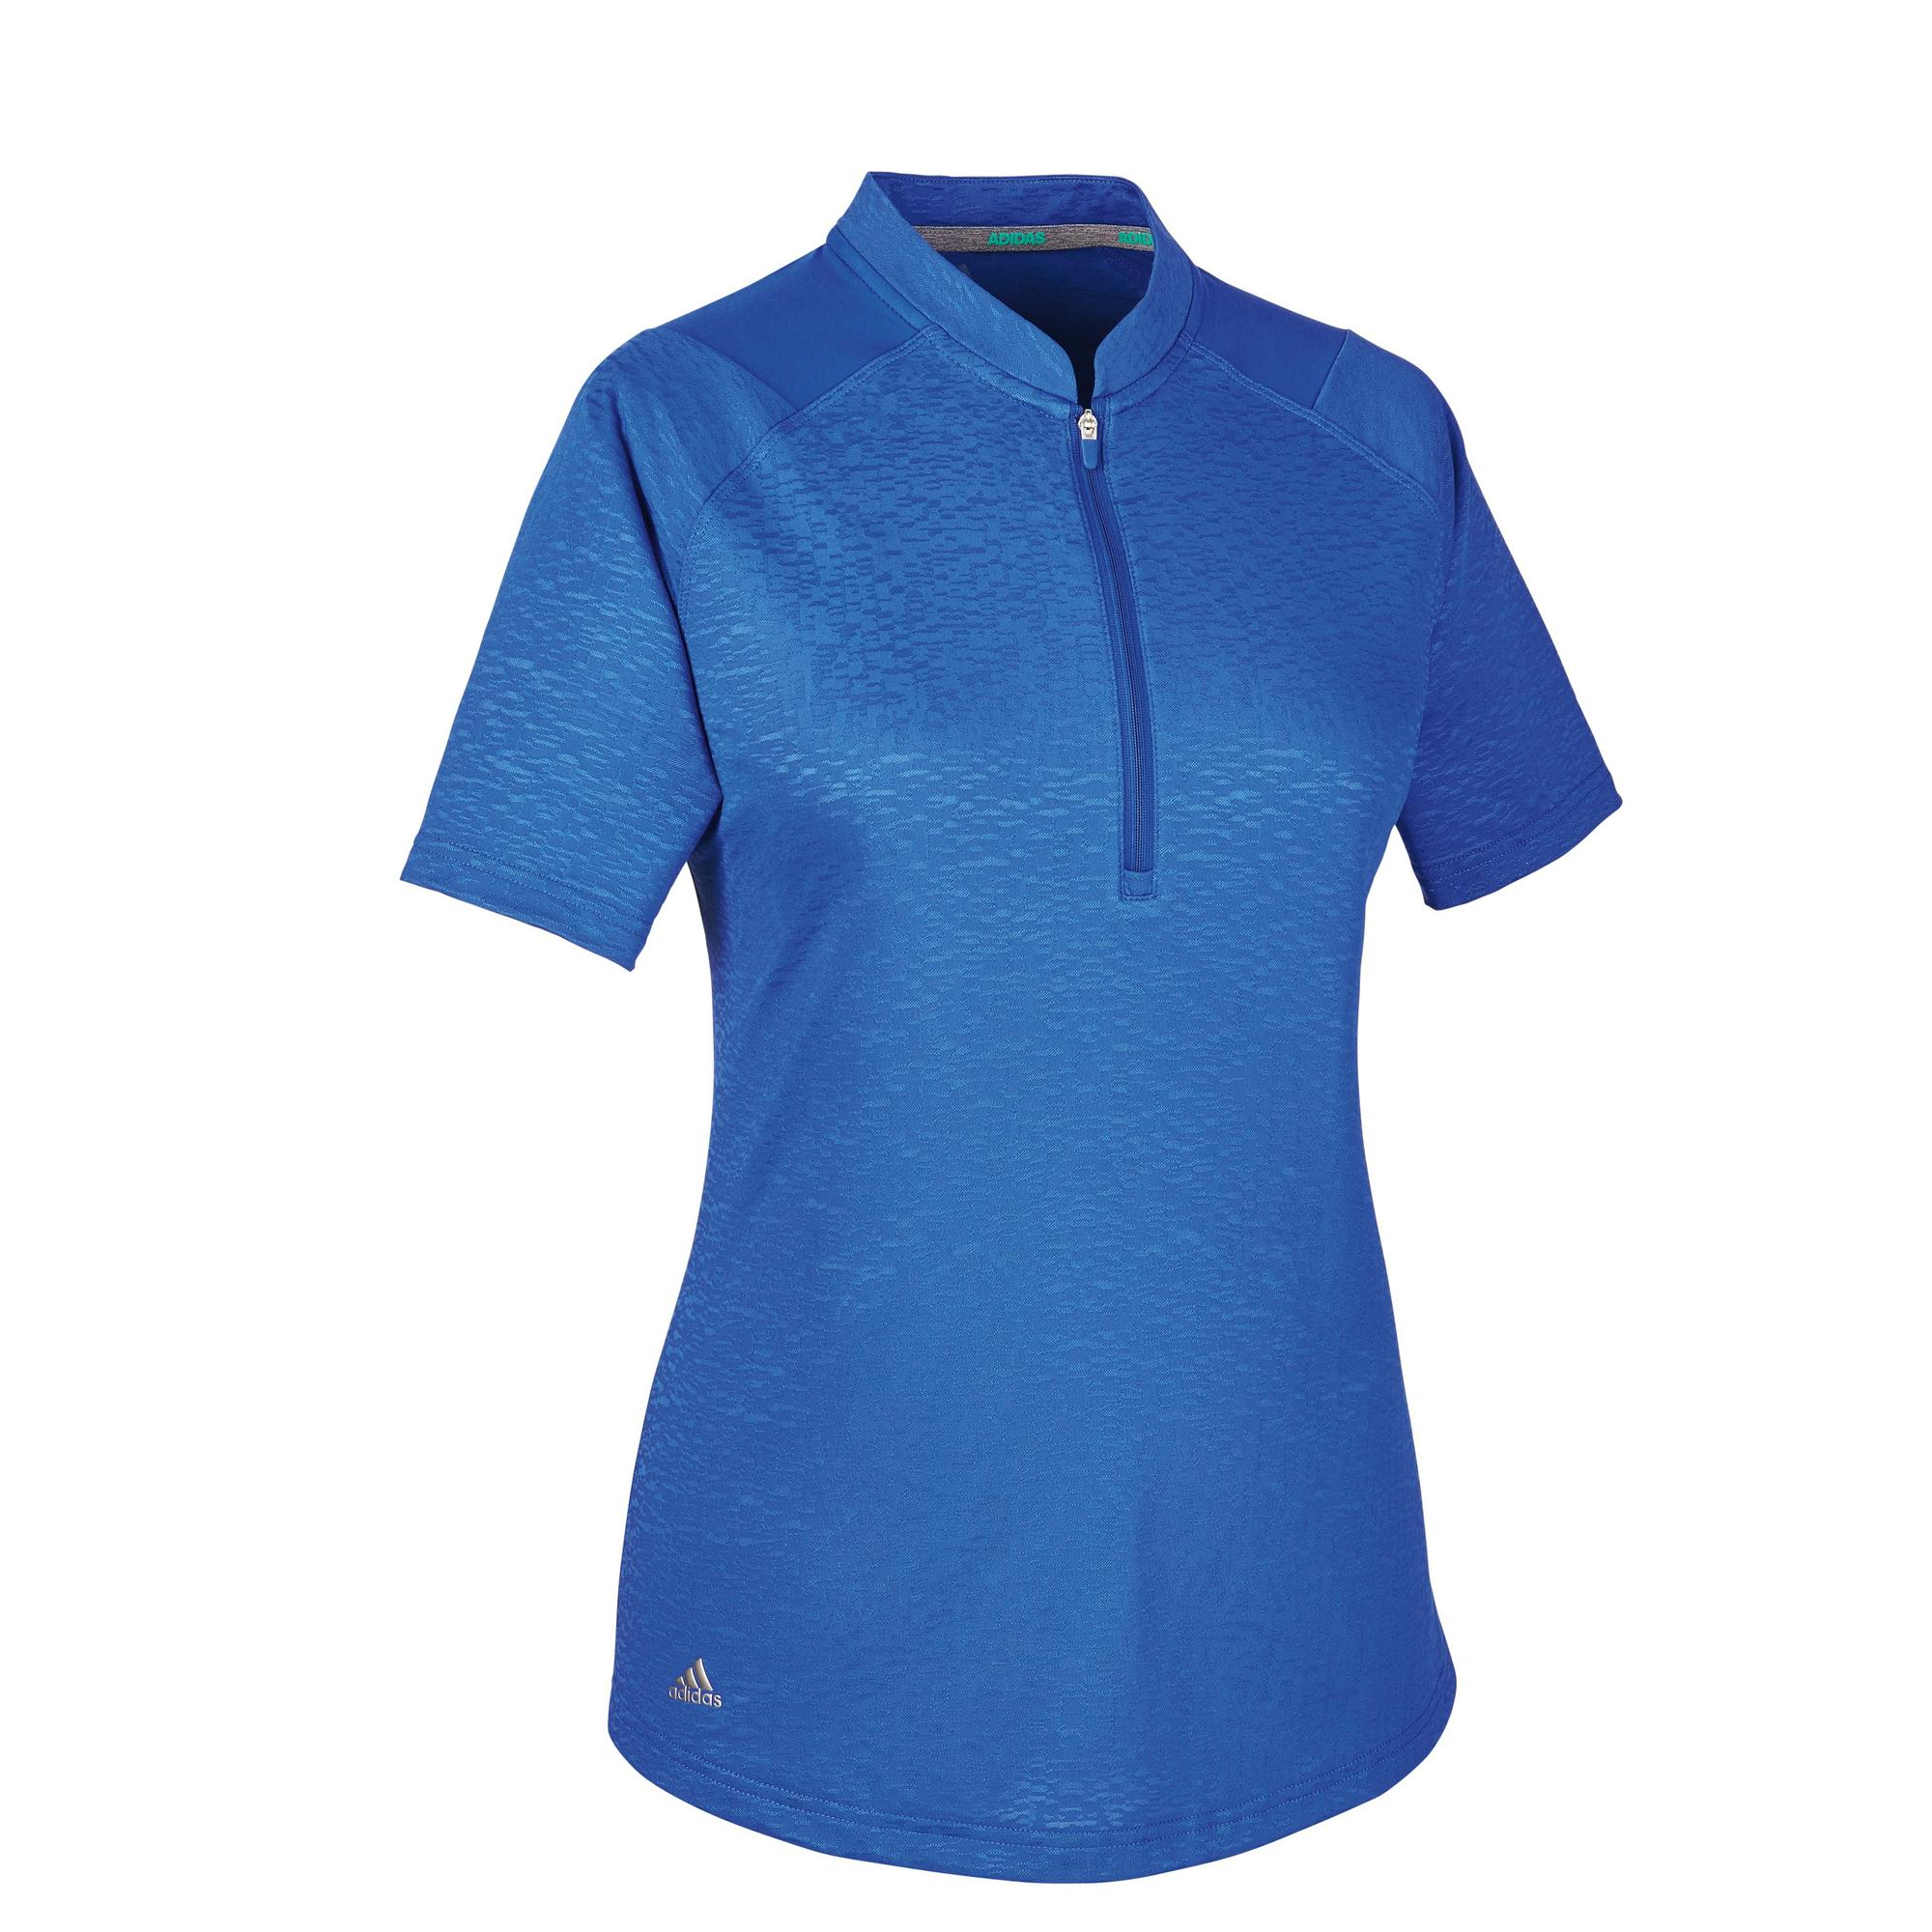 Women's Climacool Short Sleeve Polo